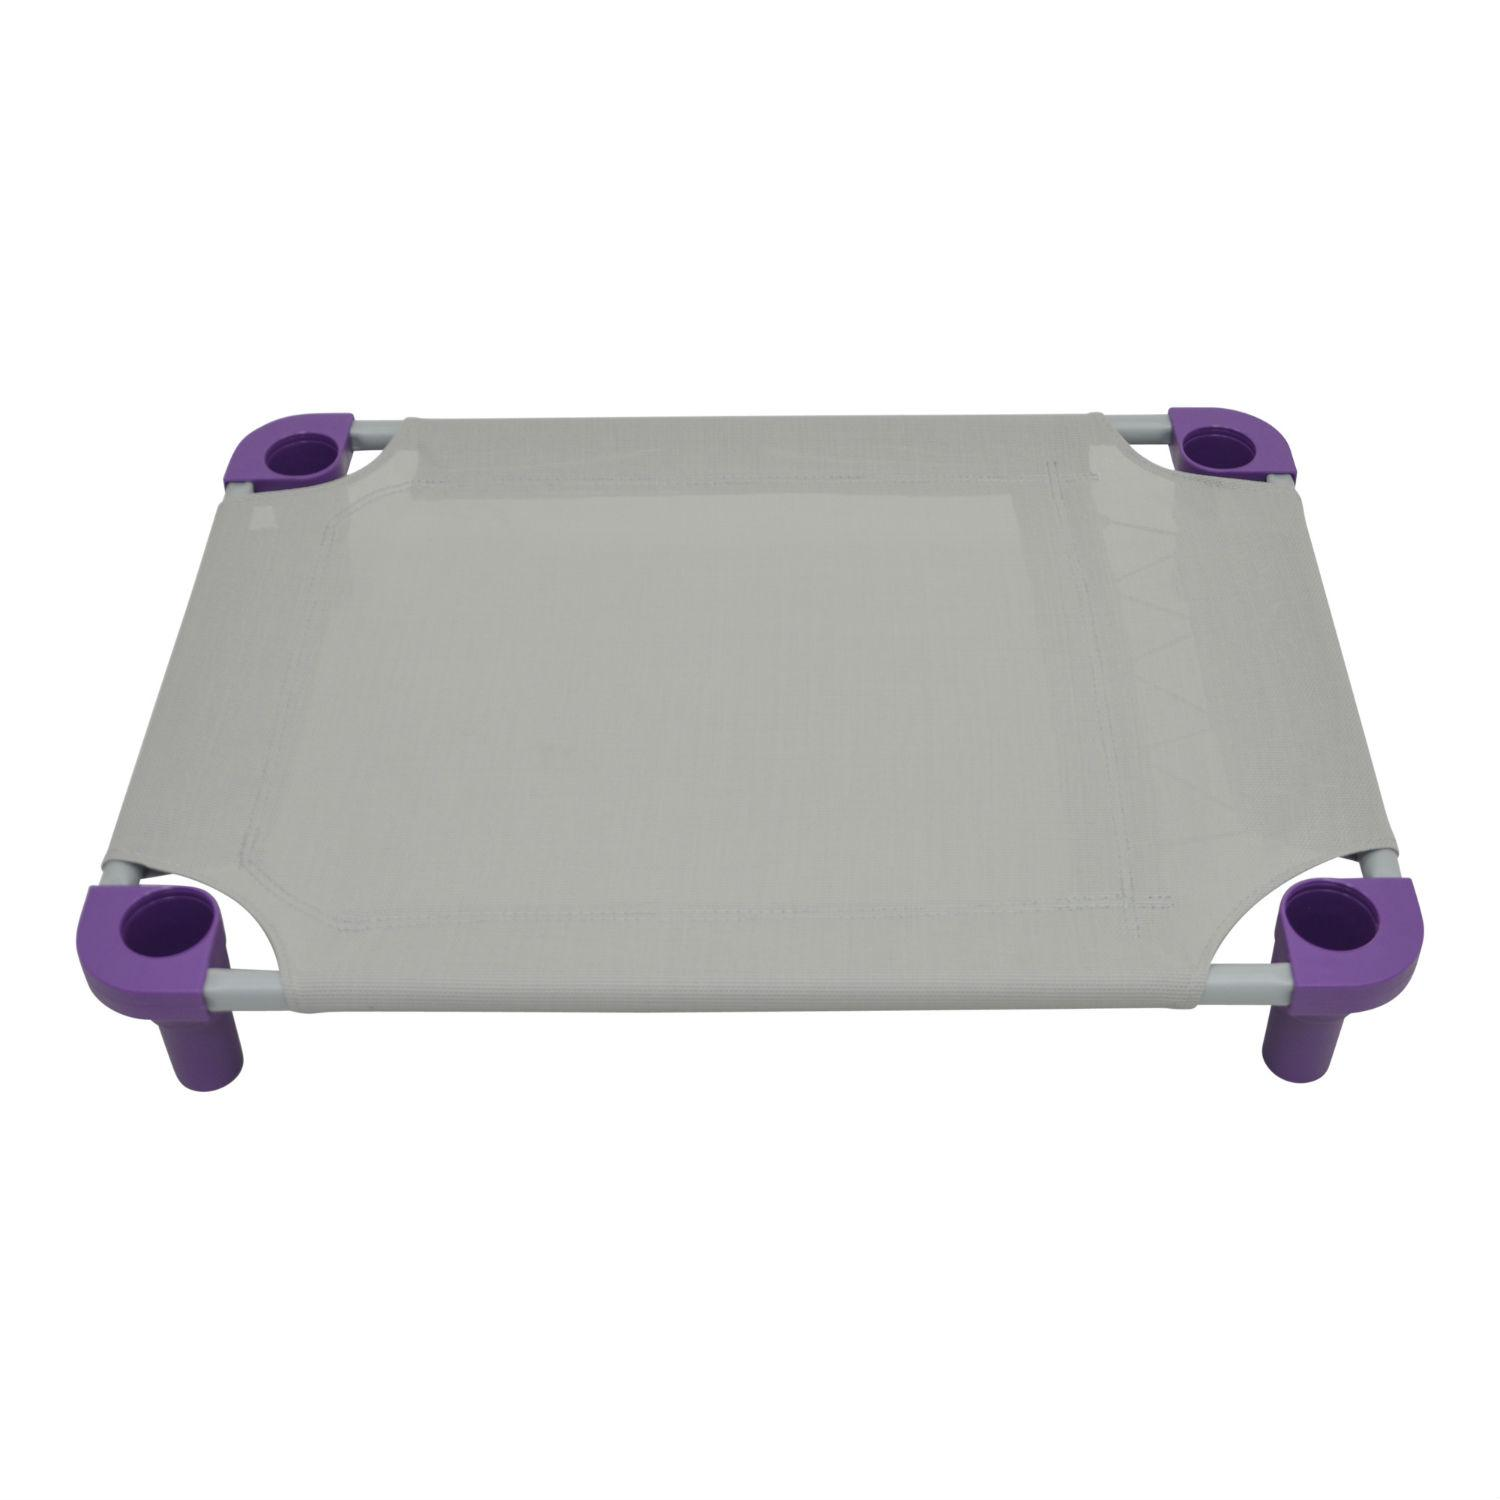 Solid Color Premium Weave Dog Cot - Gray with Purple Legs